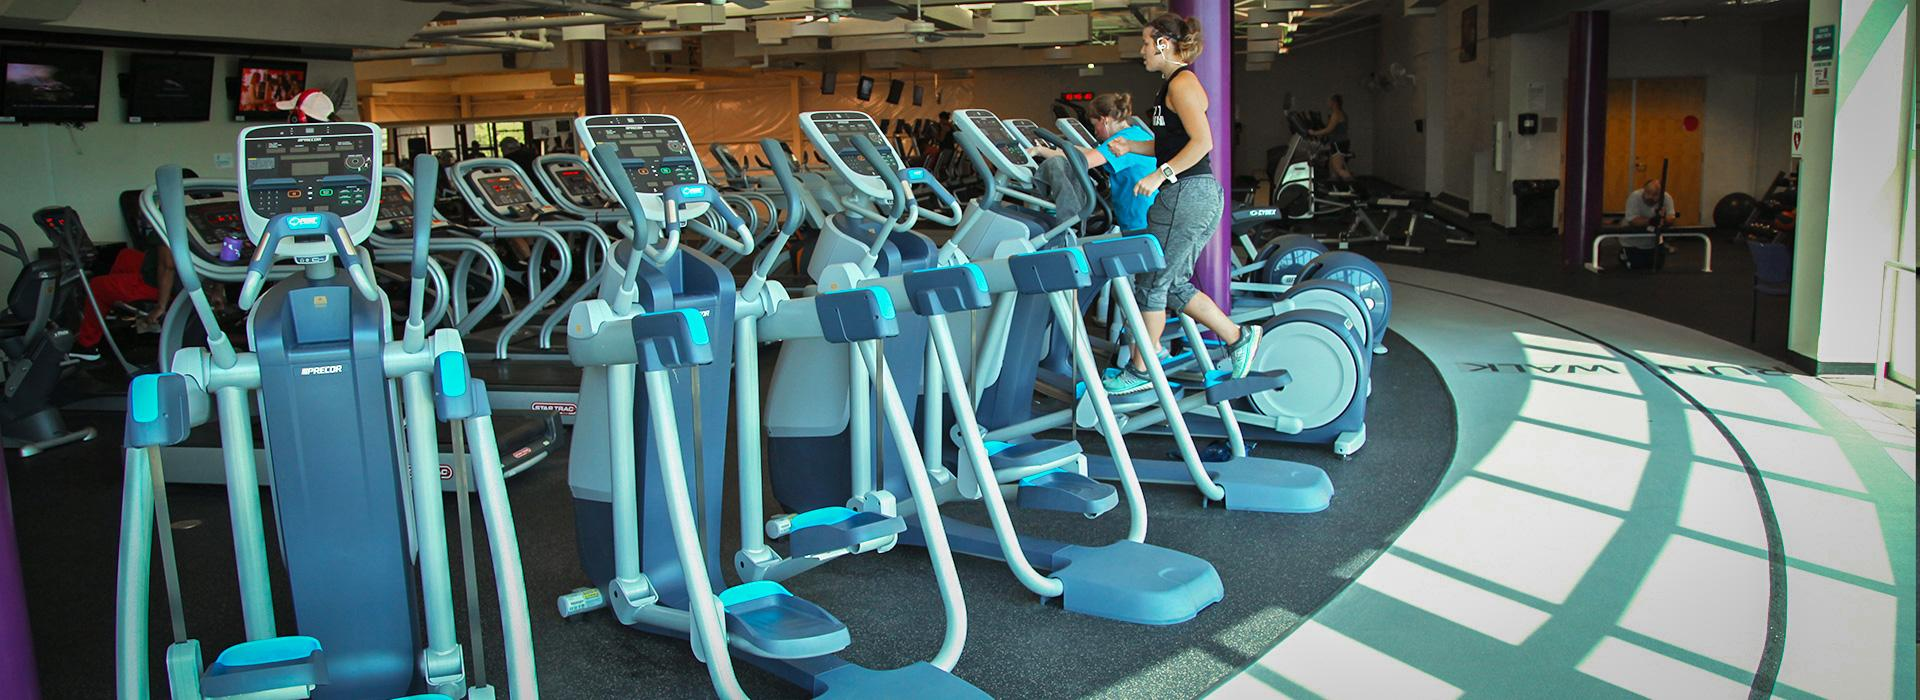 Taylor Bend Family YMCA people on cardio equipment